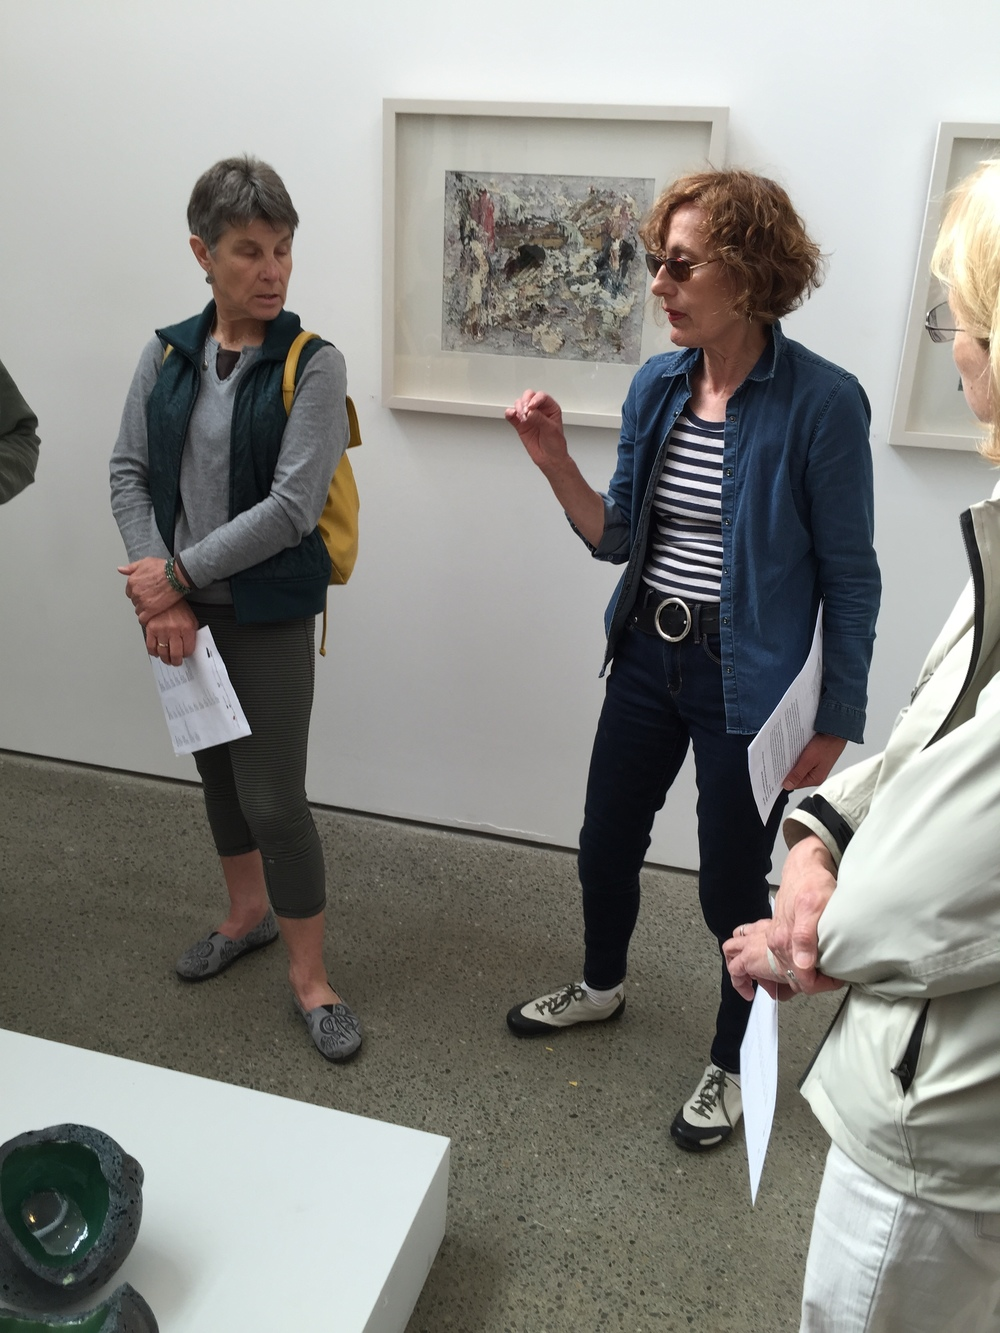 Kathleen Standen at Uillinn West Cork Art Center, taking us on a walk through of this provocative exhibition.